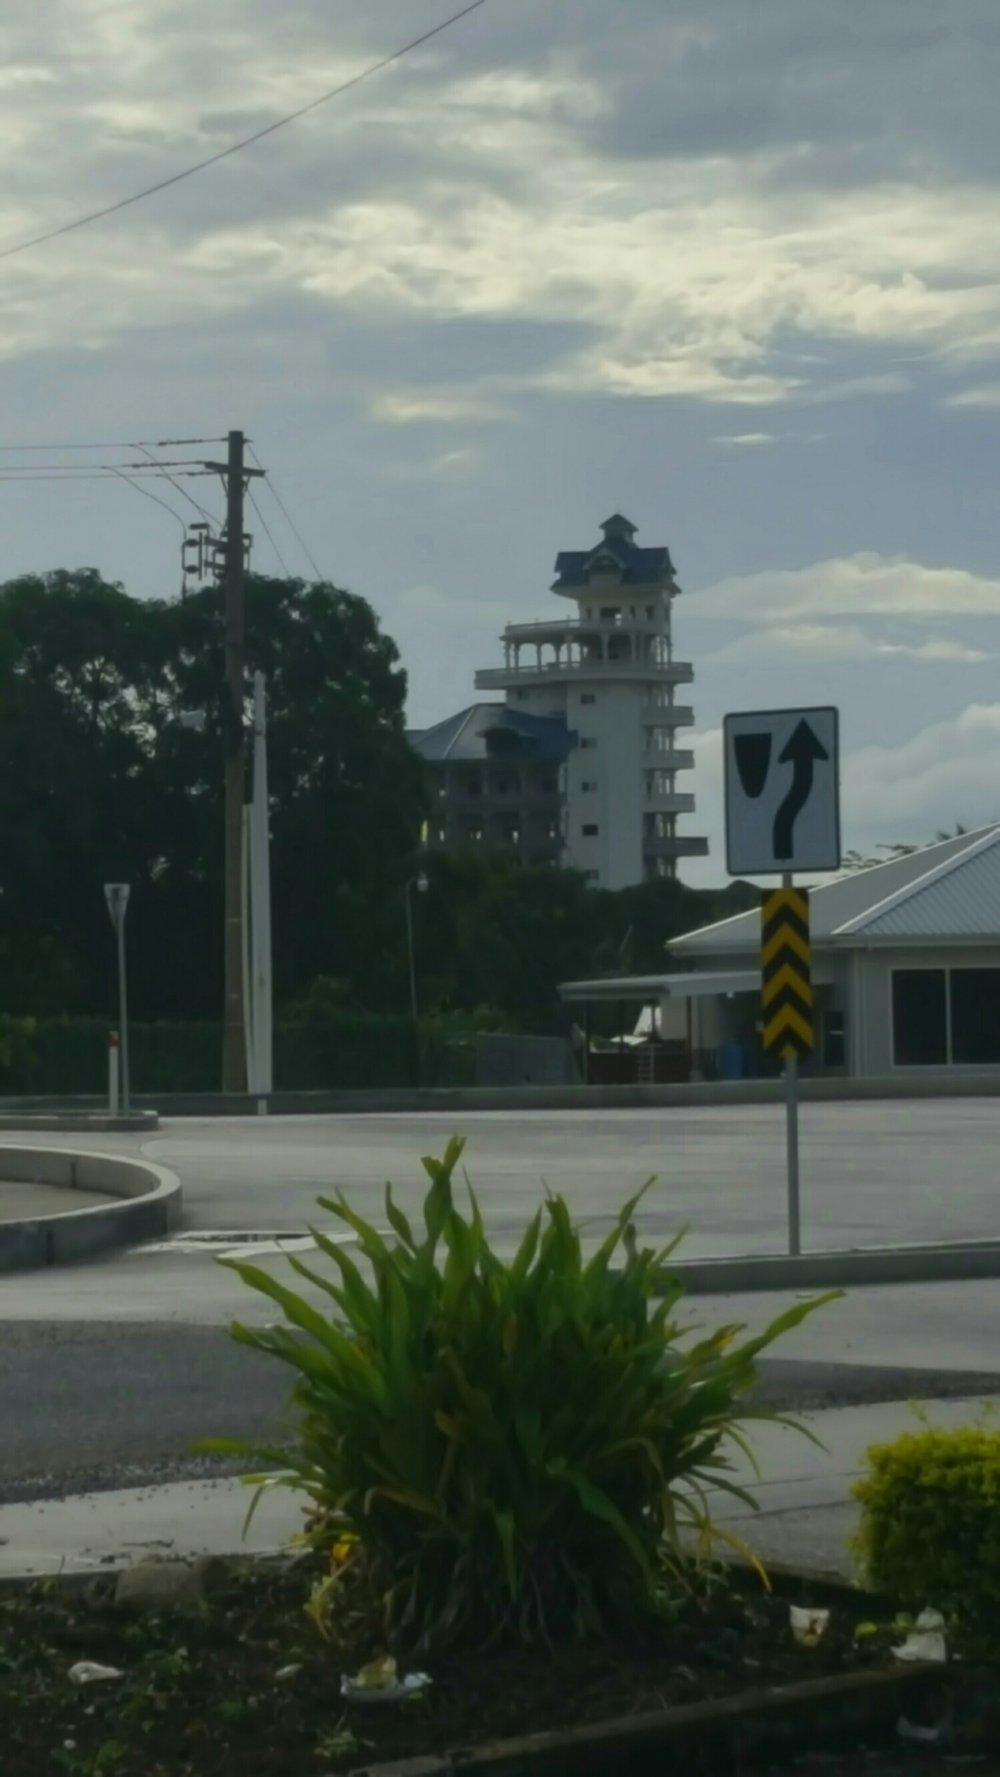 The tallest building in Belmopan, the capital of Belize, is a bit odd.